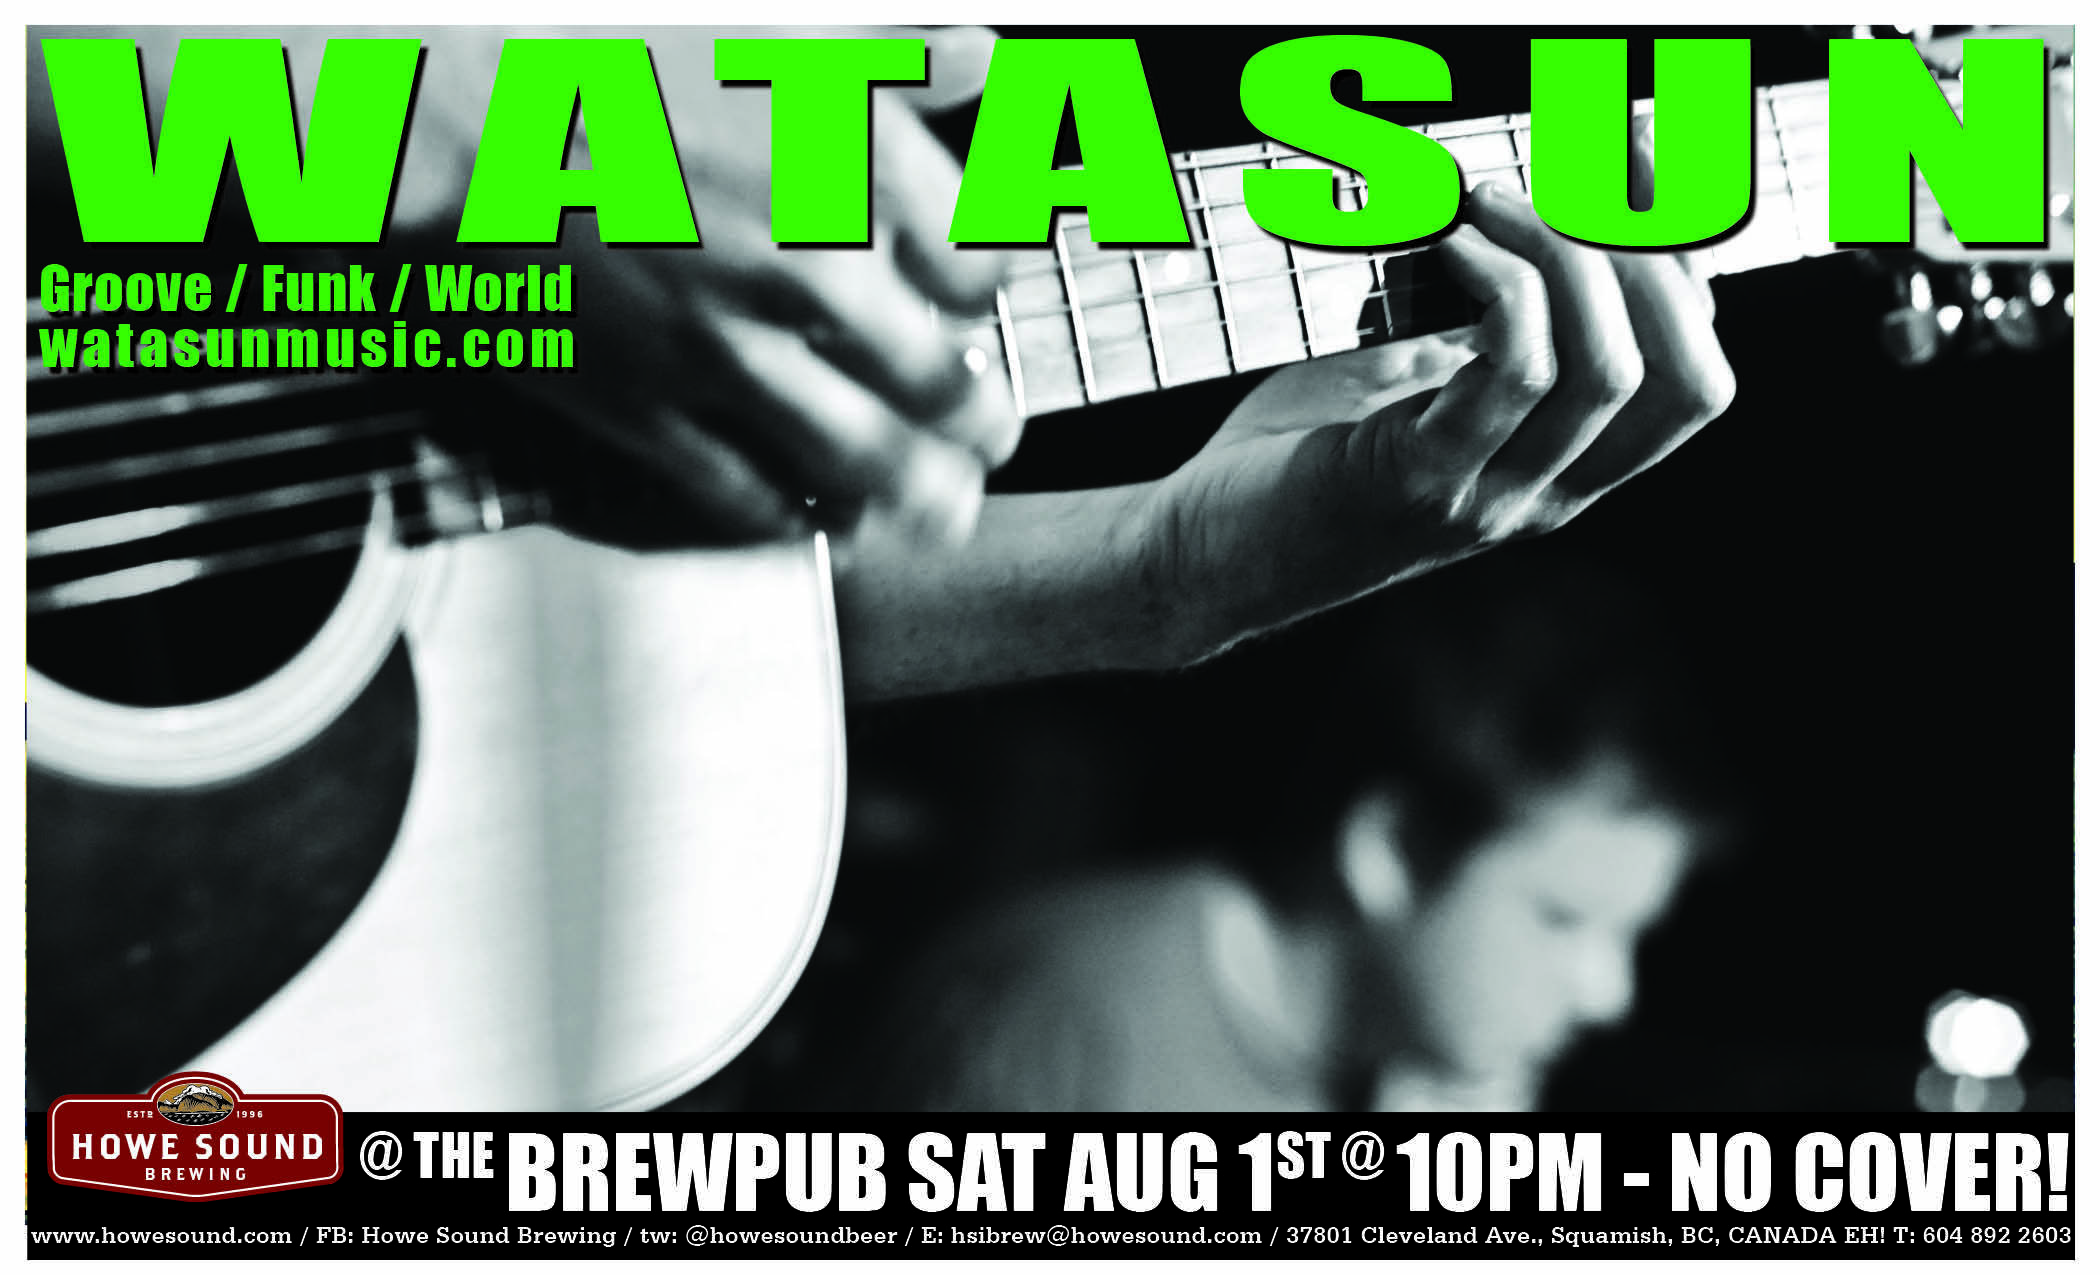 Saturday August 1 at 10 pm - Watasun at the Howe Sound Brew Pub!